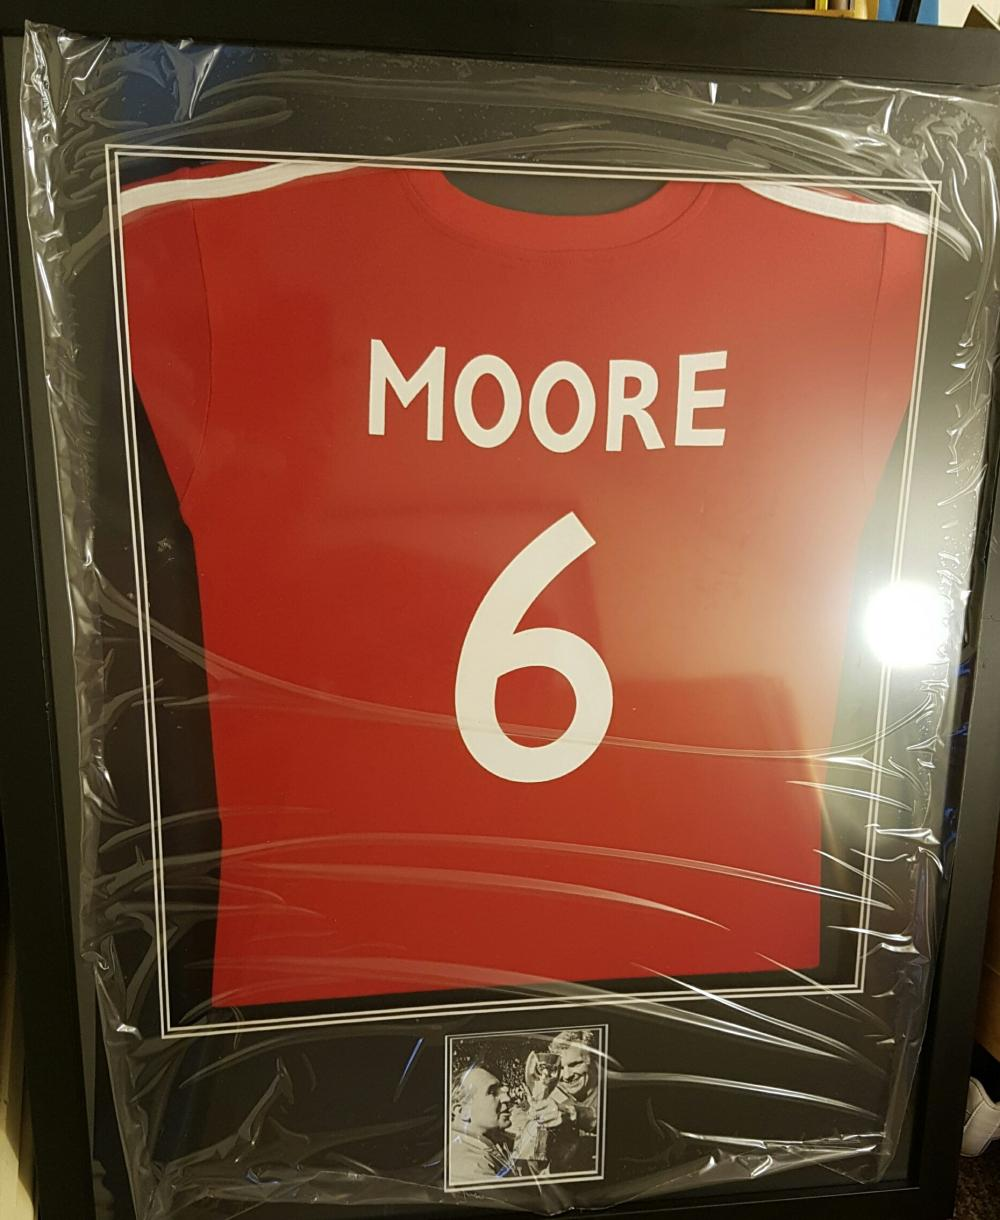 Lot 19 - Bobby Moore item containing replica red England Shirt and a signed black and white picture of Bobby Moore lifting the World Cup Trophy